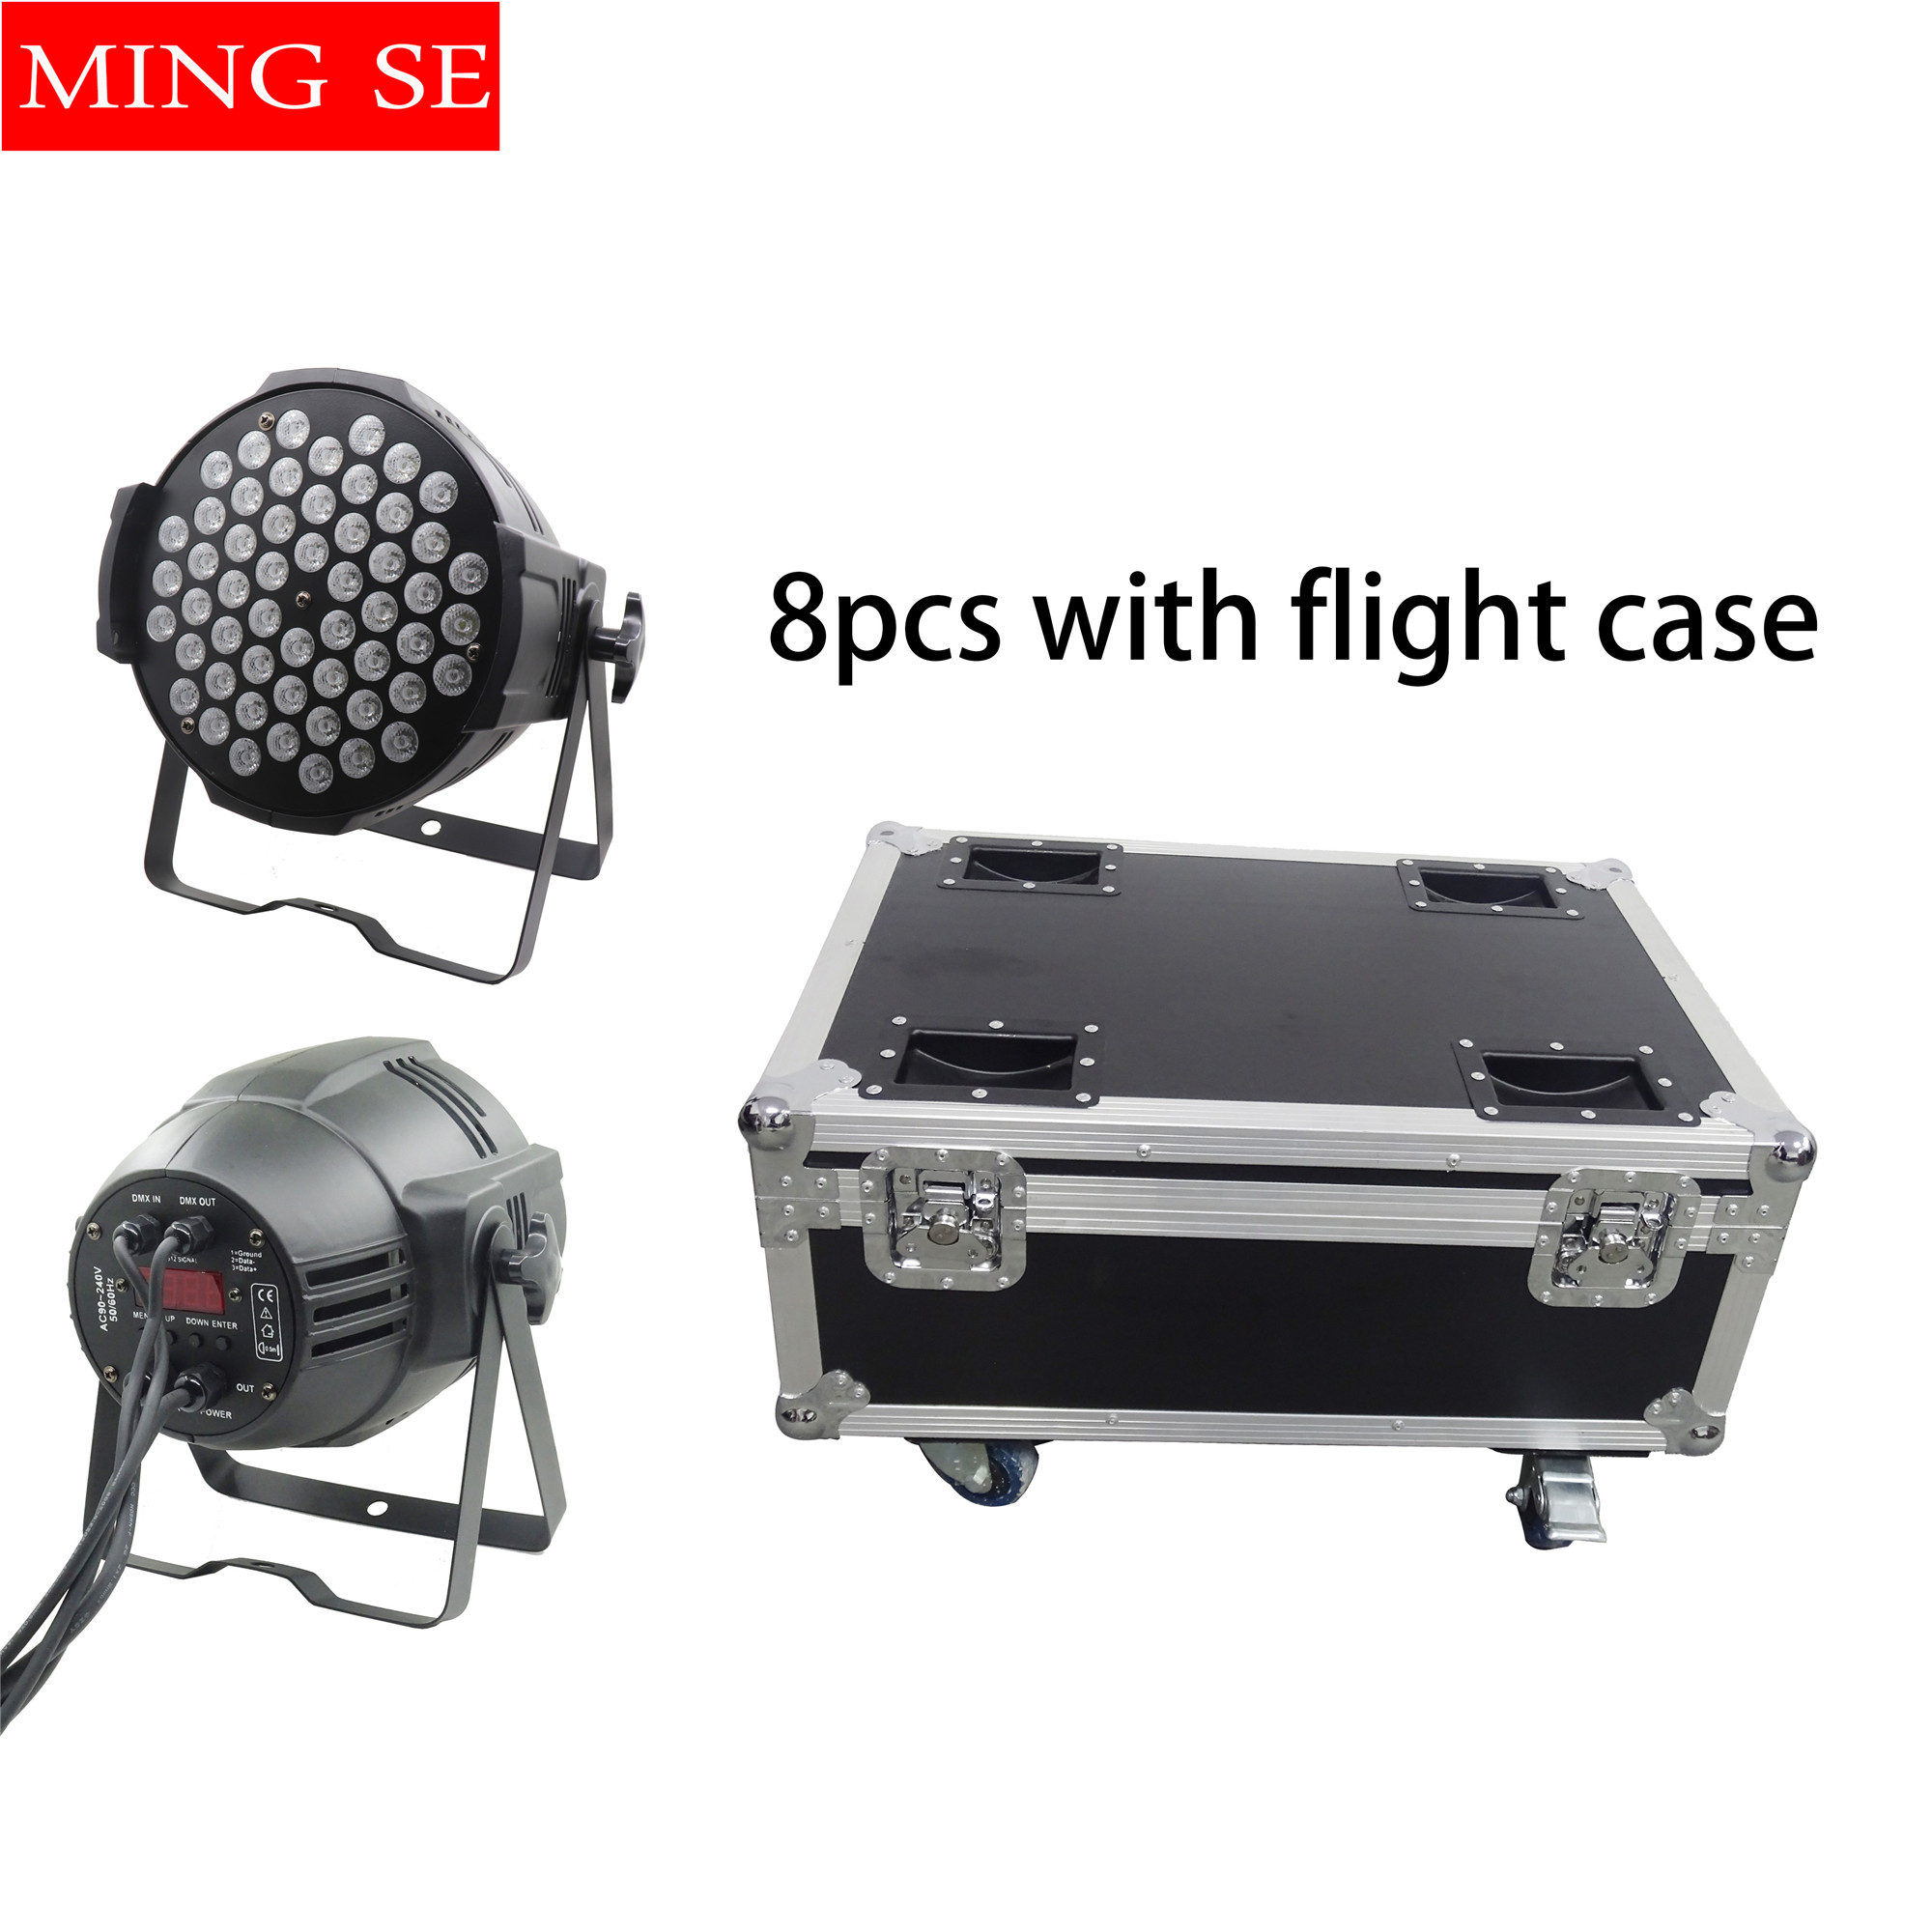 8pcs 54X3W RGBW LED Par Light  R12 G18 B18 W6 LED PAR DMX512 controller led lights, disco lights DJ equipment with flight case8pcs 54X3W RGBW LED Par Light  R12 G18 B18 W6 LED PAR DMX512 controller led lights, disco lights DJ equipment with flight case